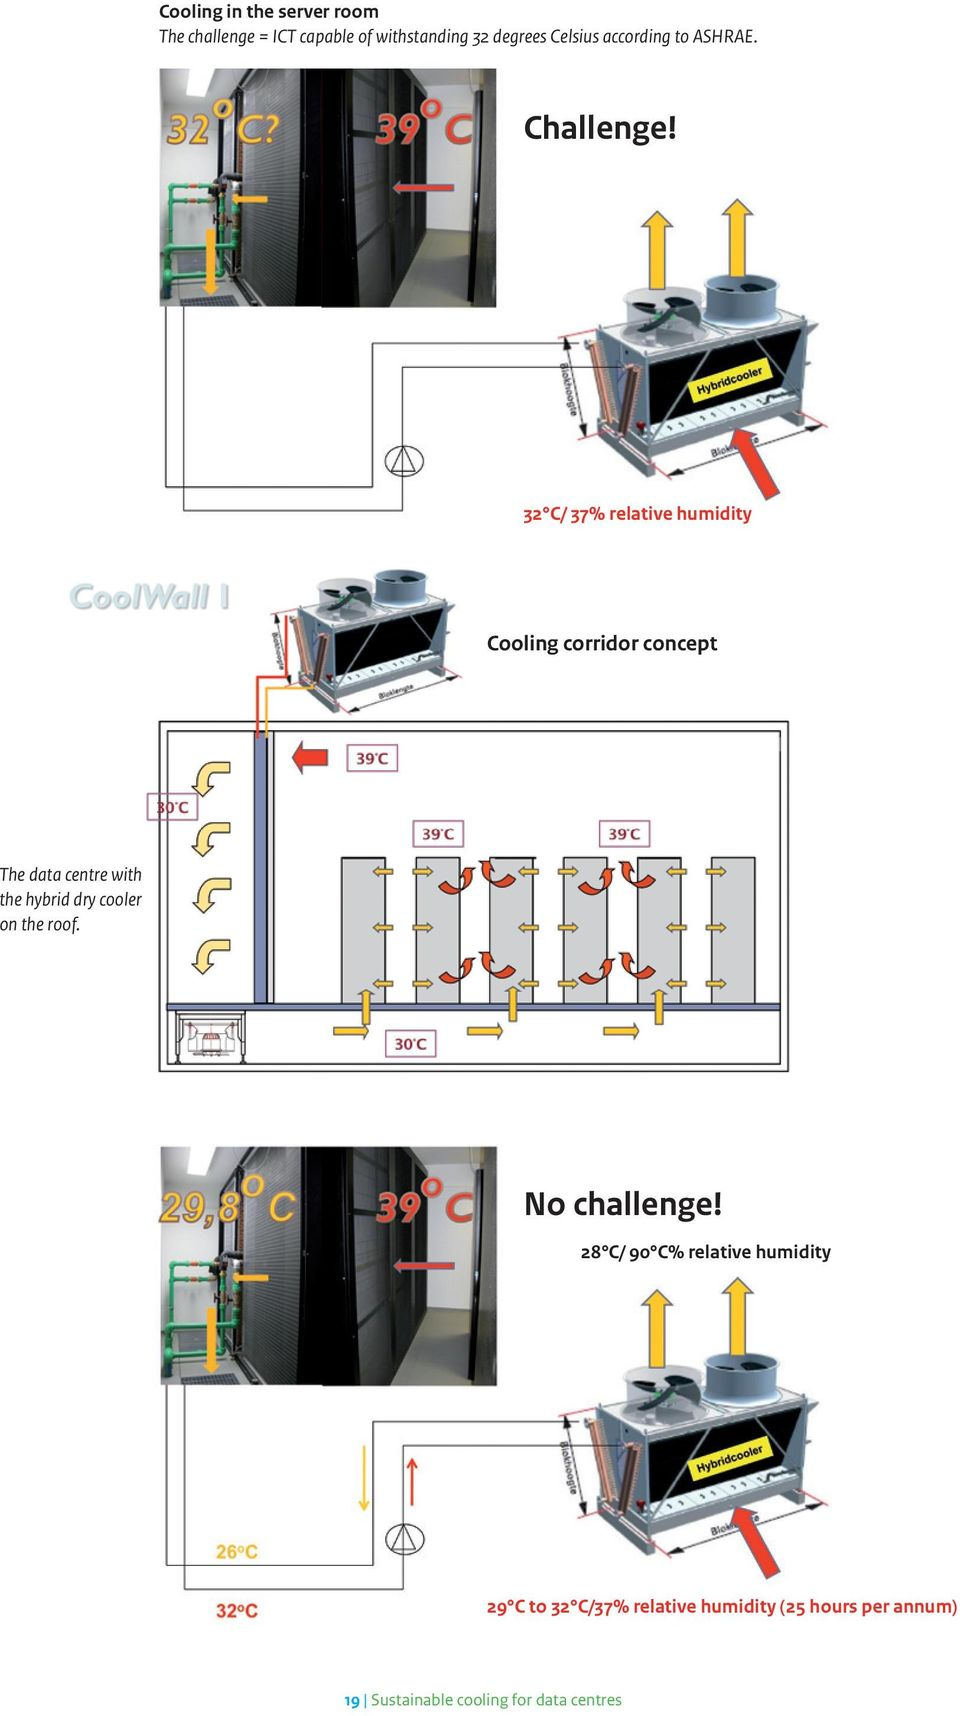 32 C/ 37% relative humidity Cooling corridor concept The data centre with the hybrid dry